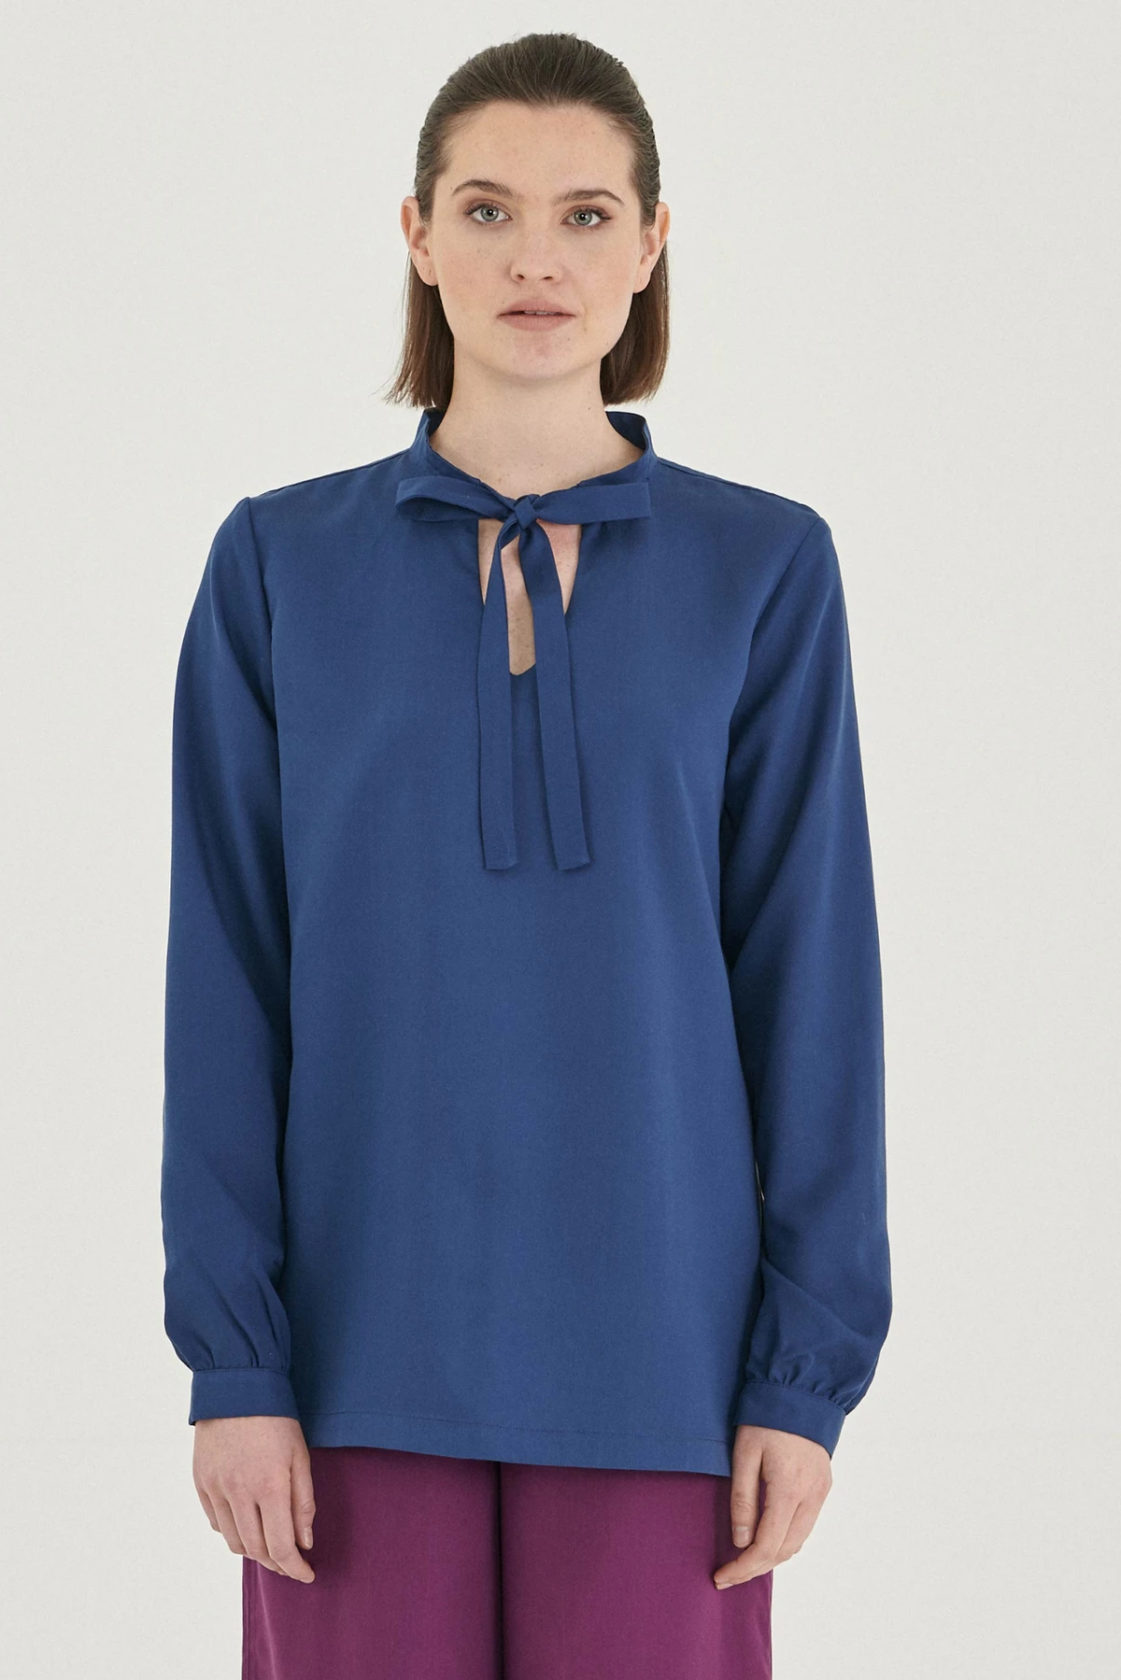 Roberta Organic Fashion Organication Bluse Blau 1